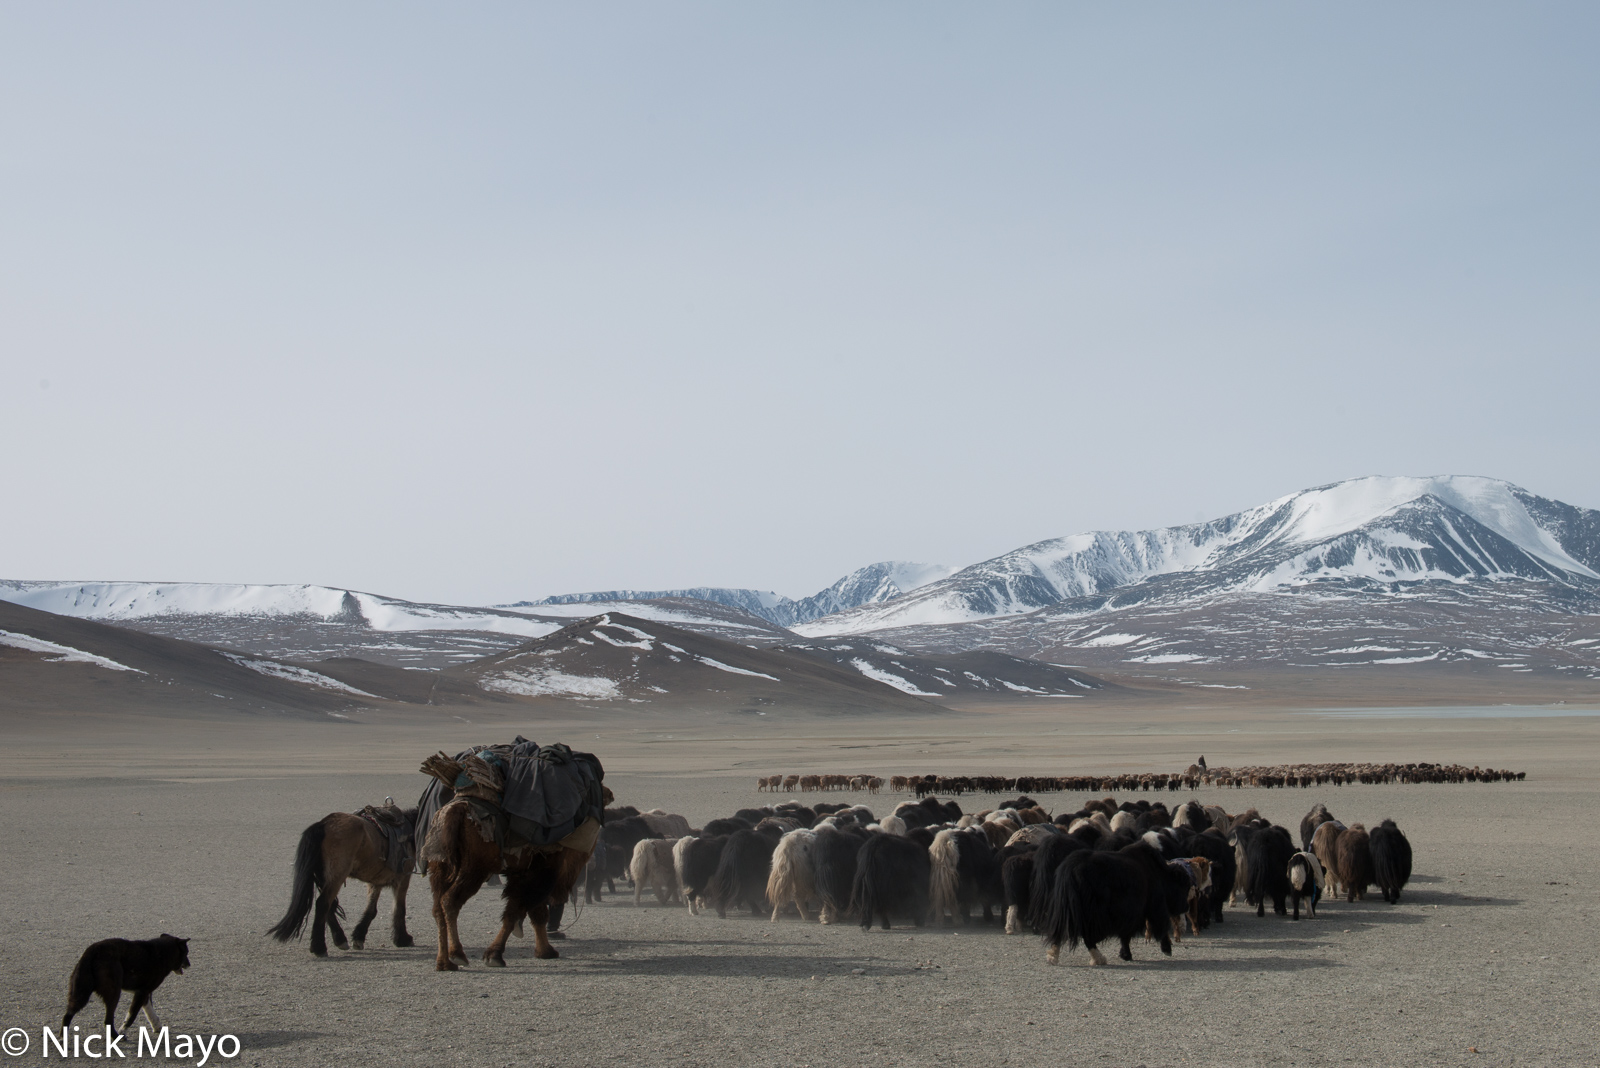 Bayan-Ölgii, Camel, Dog, Goat, Horse, Kazakh, Mongolia, Pack Animal, Sheep, Yak, photo